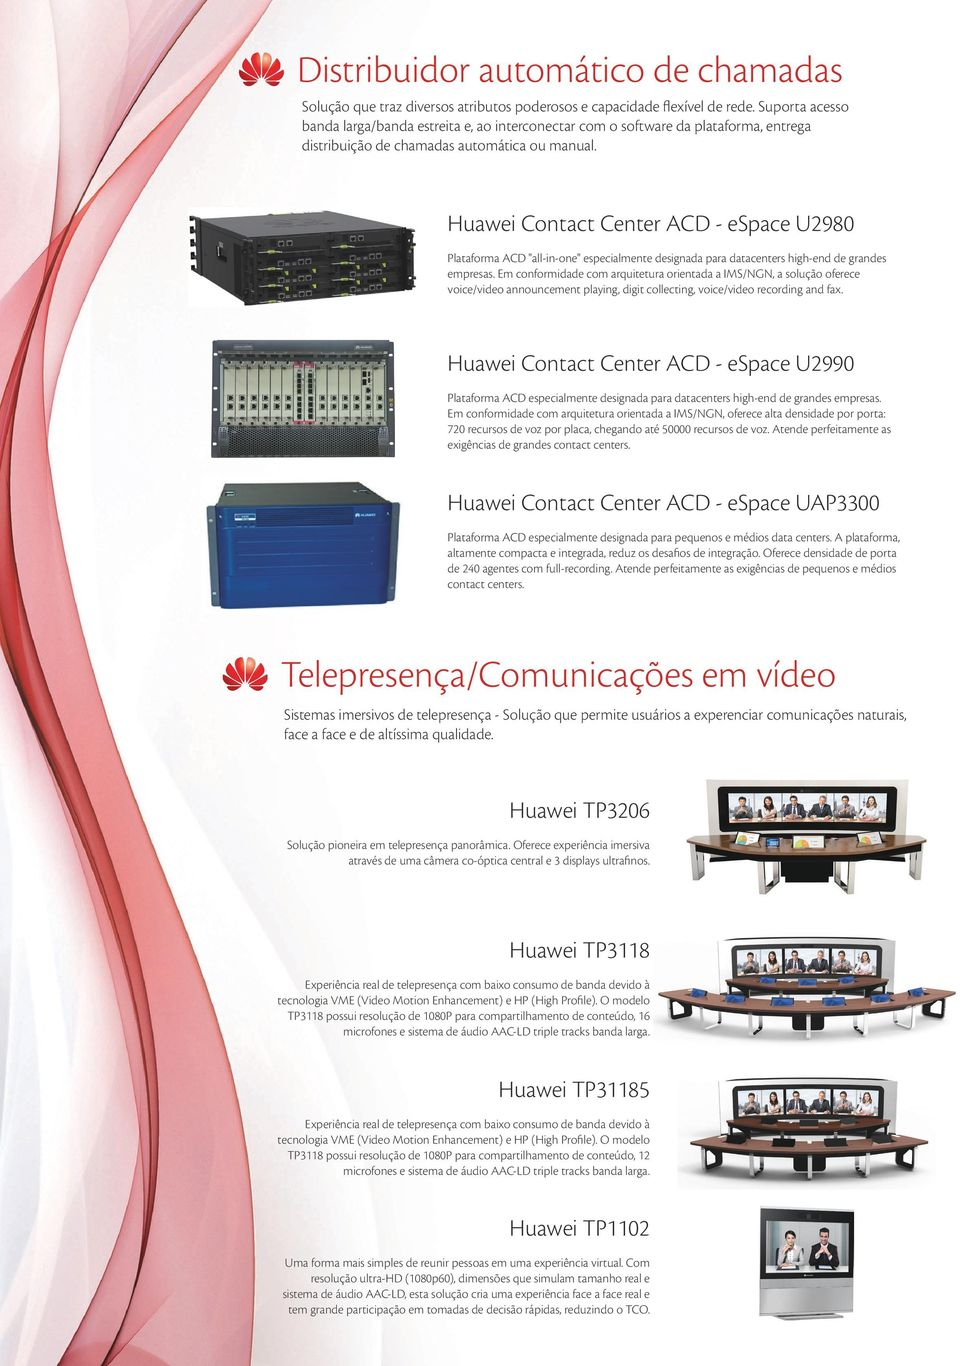 "Huawei Contact Center ACD - espace U2980 Plataforma ACD ""all-in-one"" especialmente designada para datacenters high-end de grandes empresas."